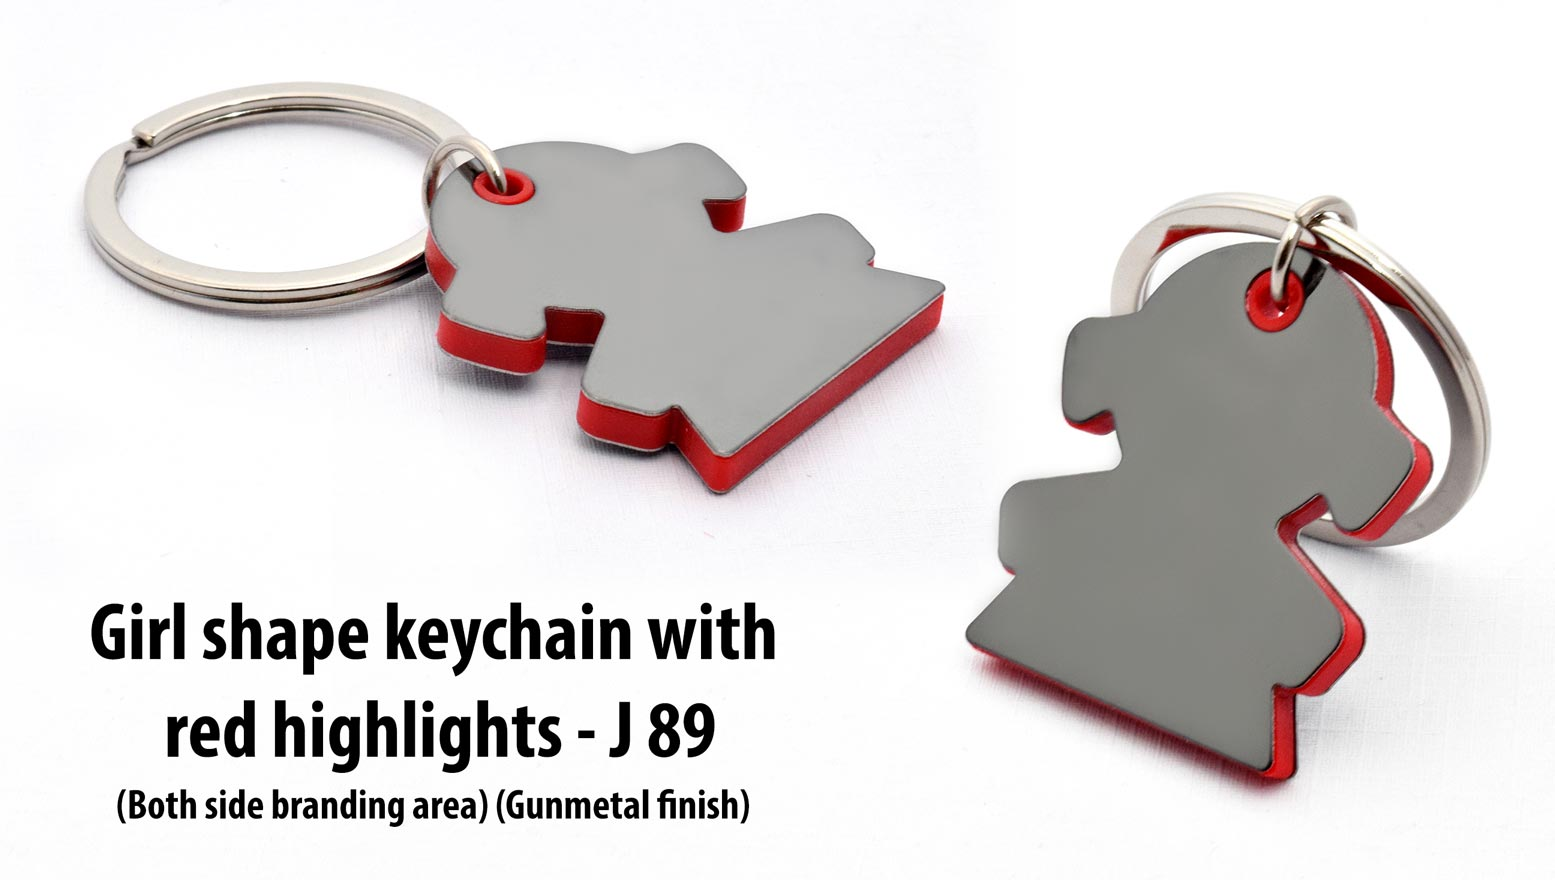 J89 - Girl shape keychain with highlights